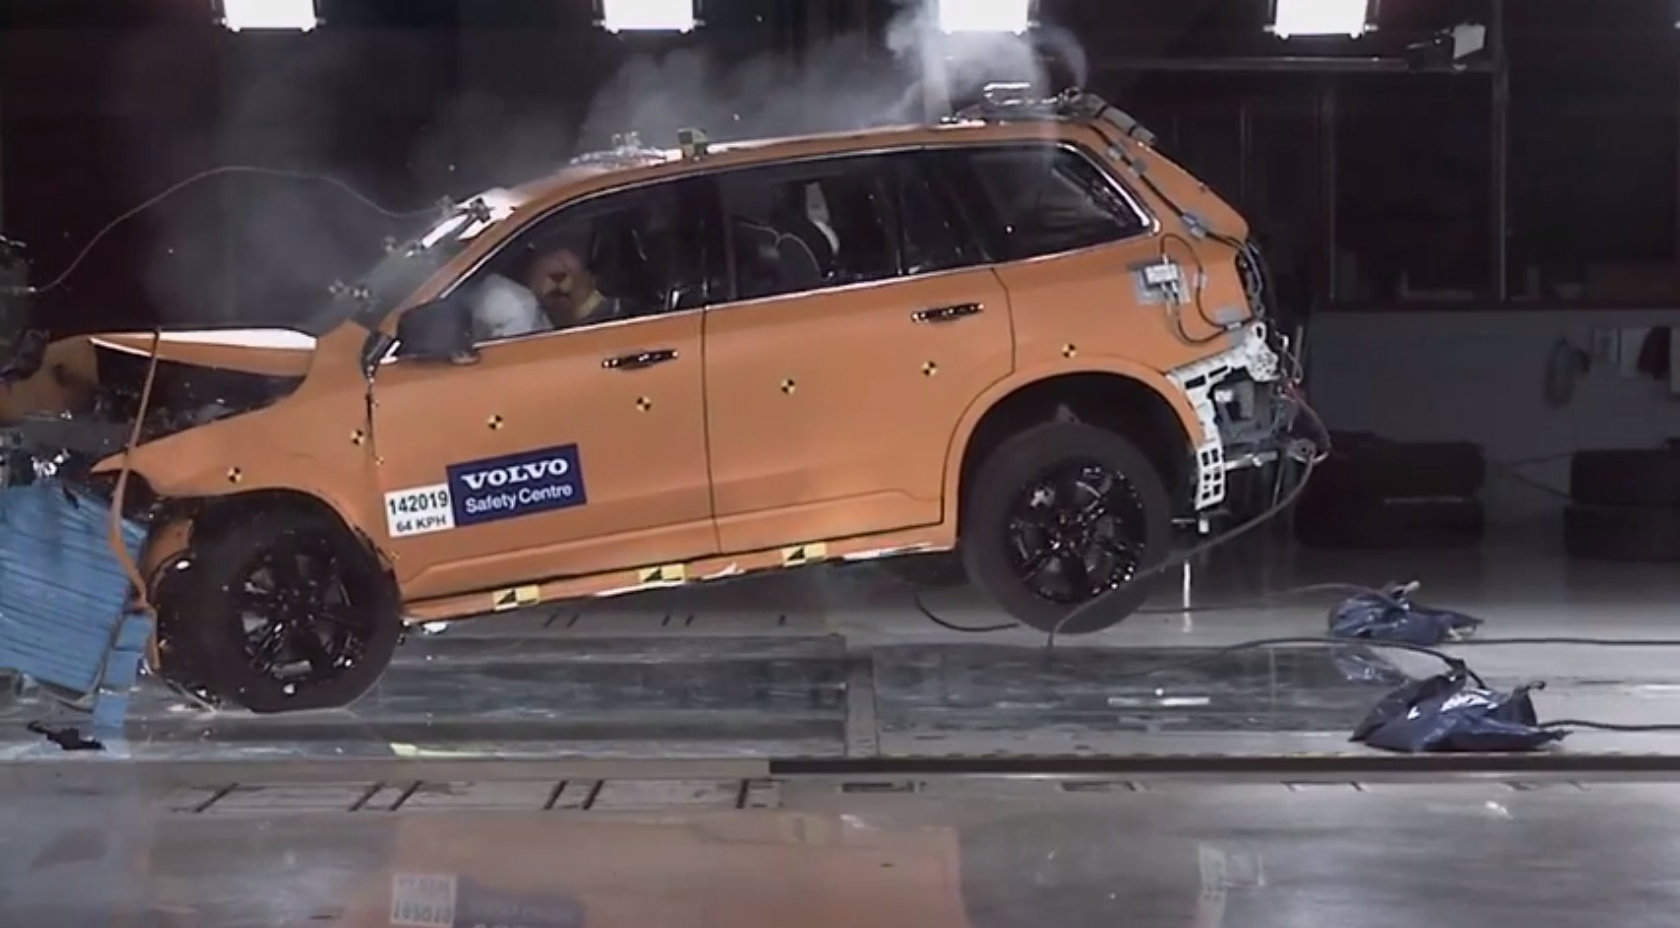 2015 Volvo XC90 Crash Test Footage Reveals a Very Tough Cookie